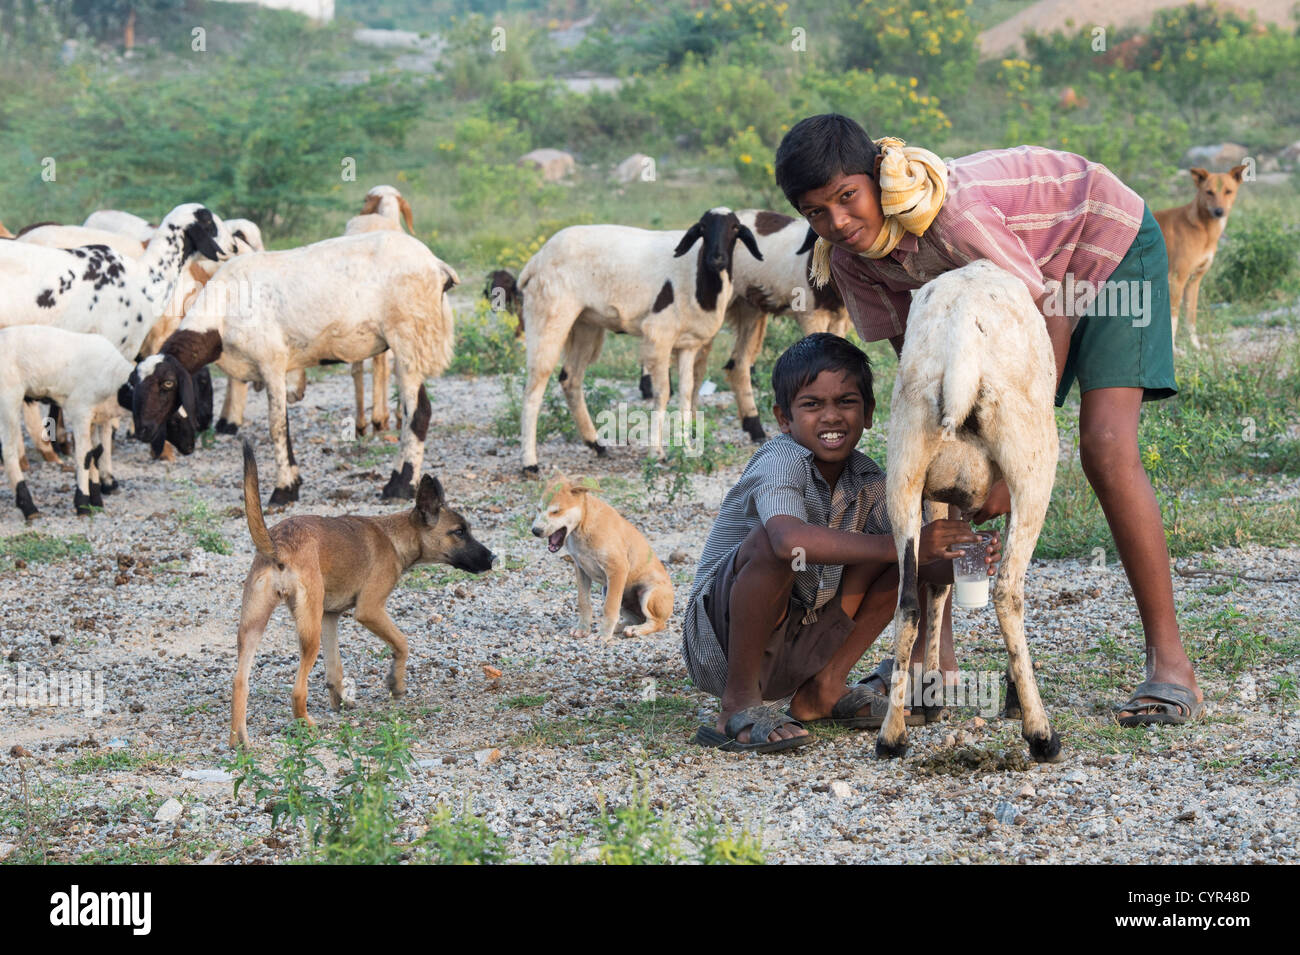 Indian goat herder boys milking goats in the indian